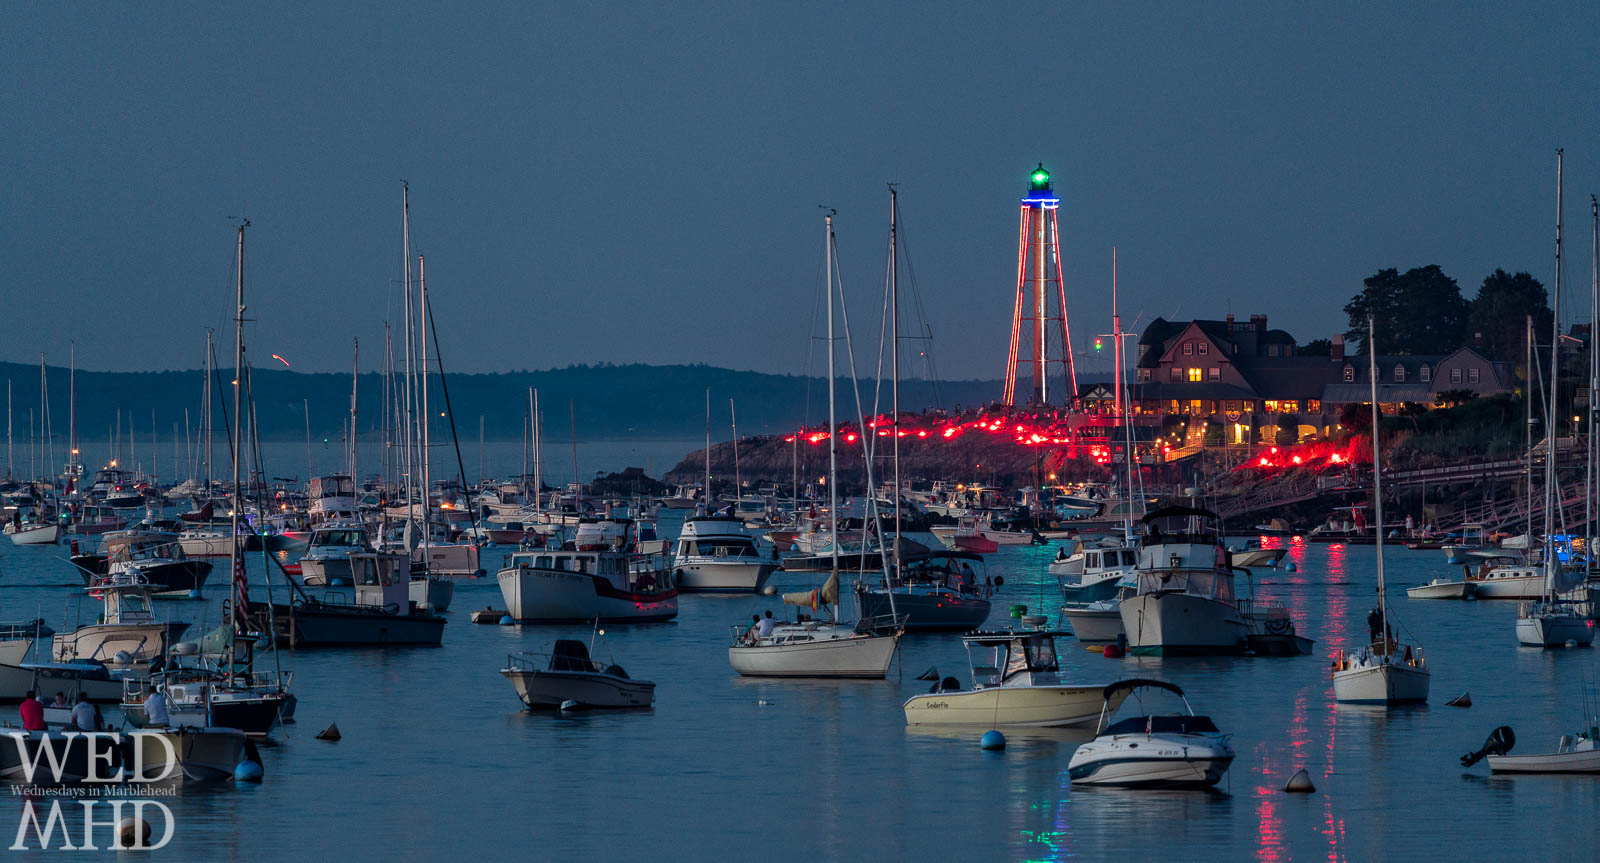 Flares light up the harbor and reflect in the still water on the Fourth of July displaying the magical illumination that occurs annually before the fireworks show